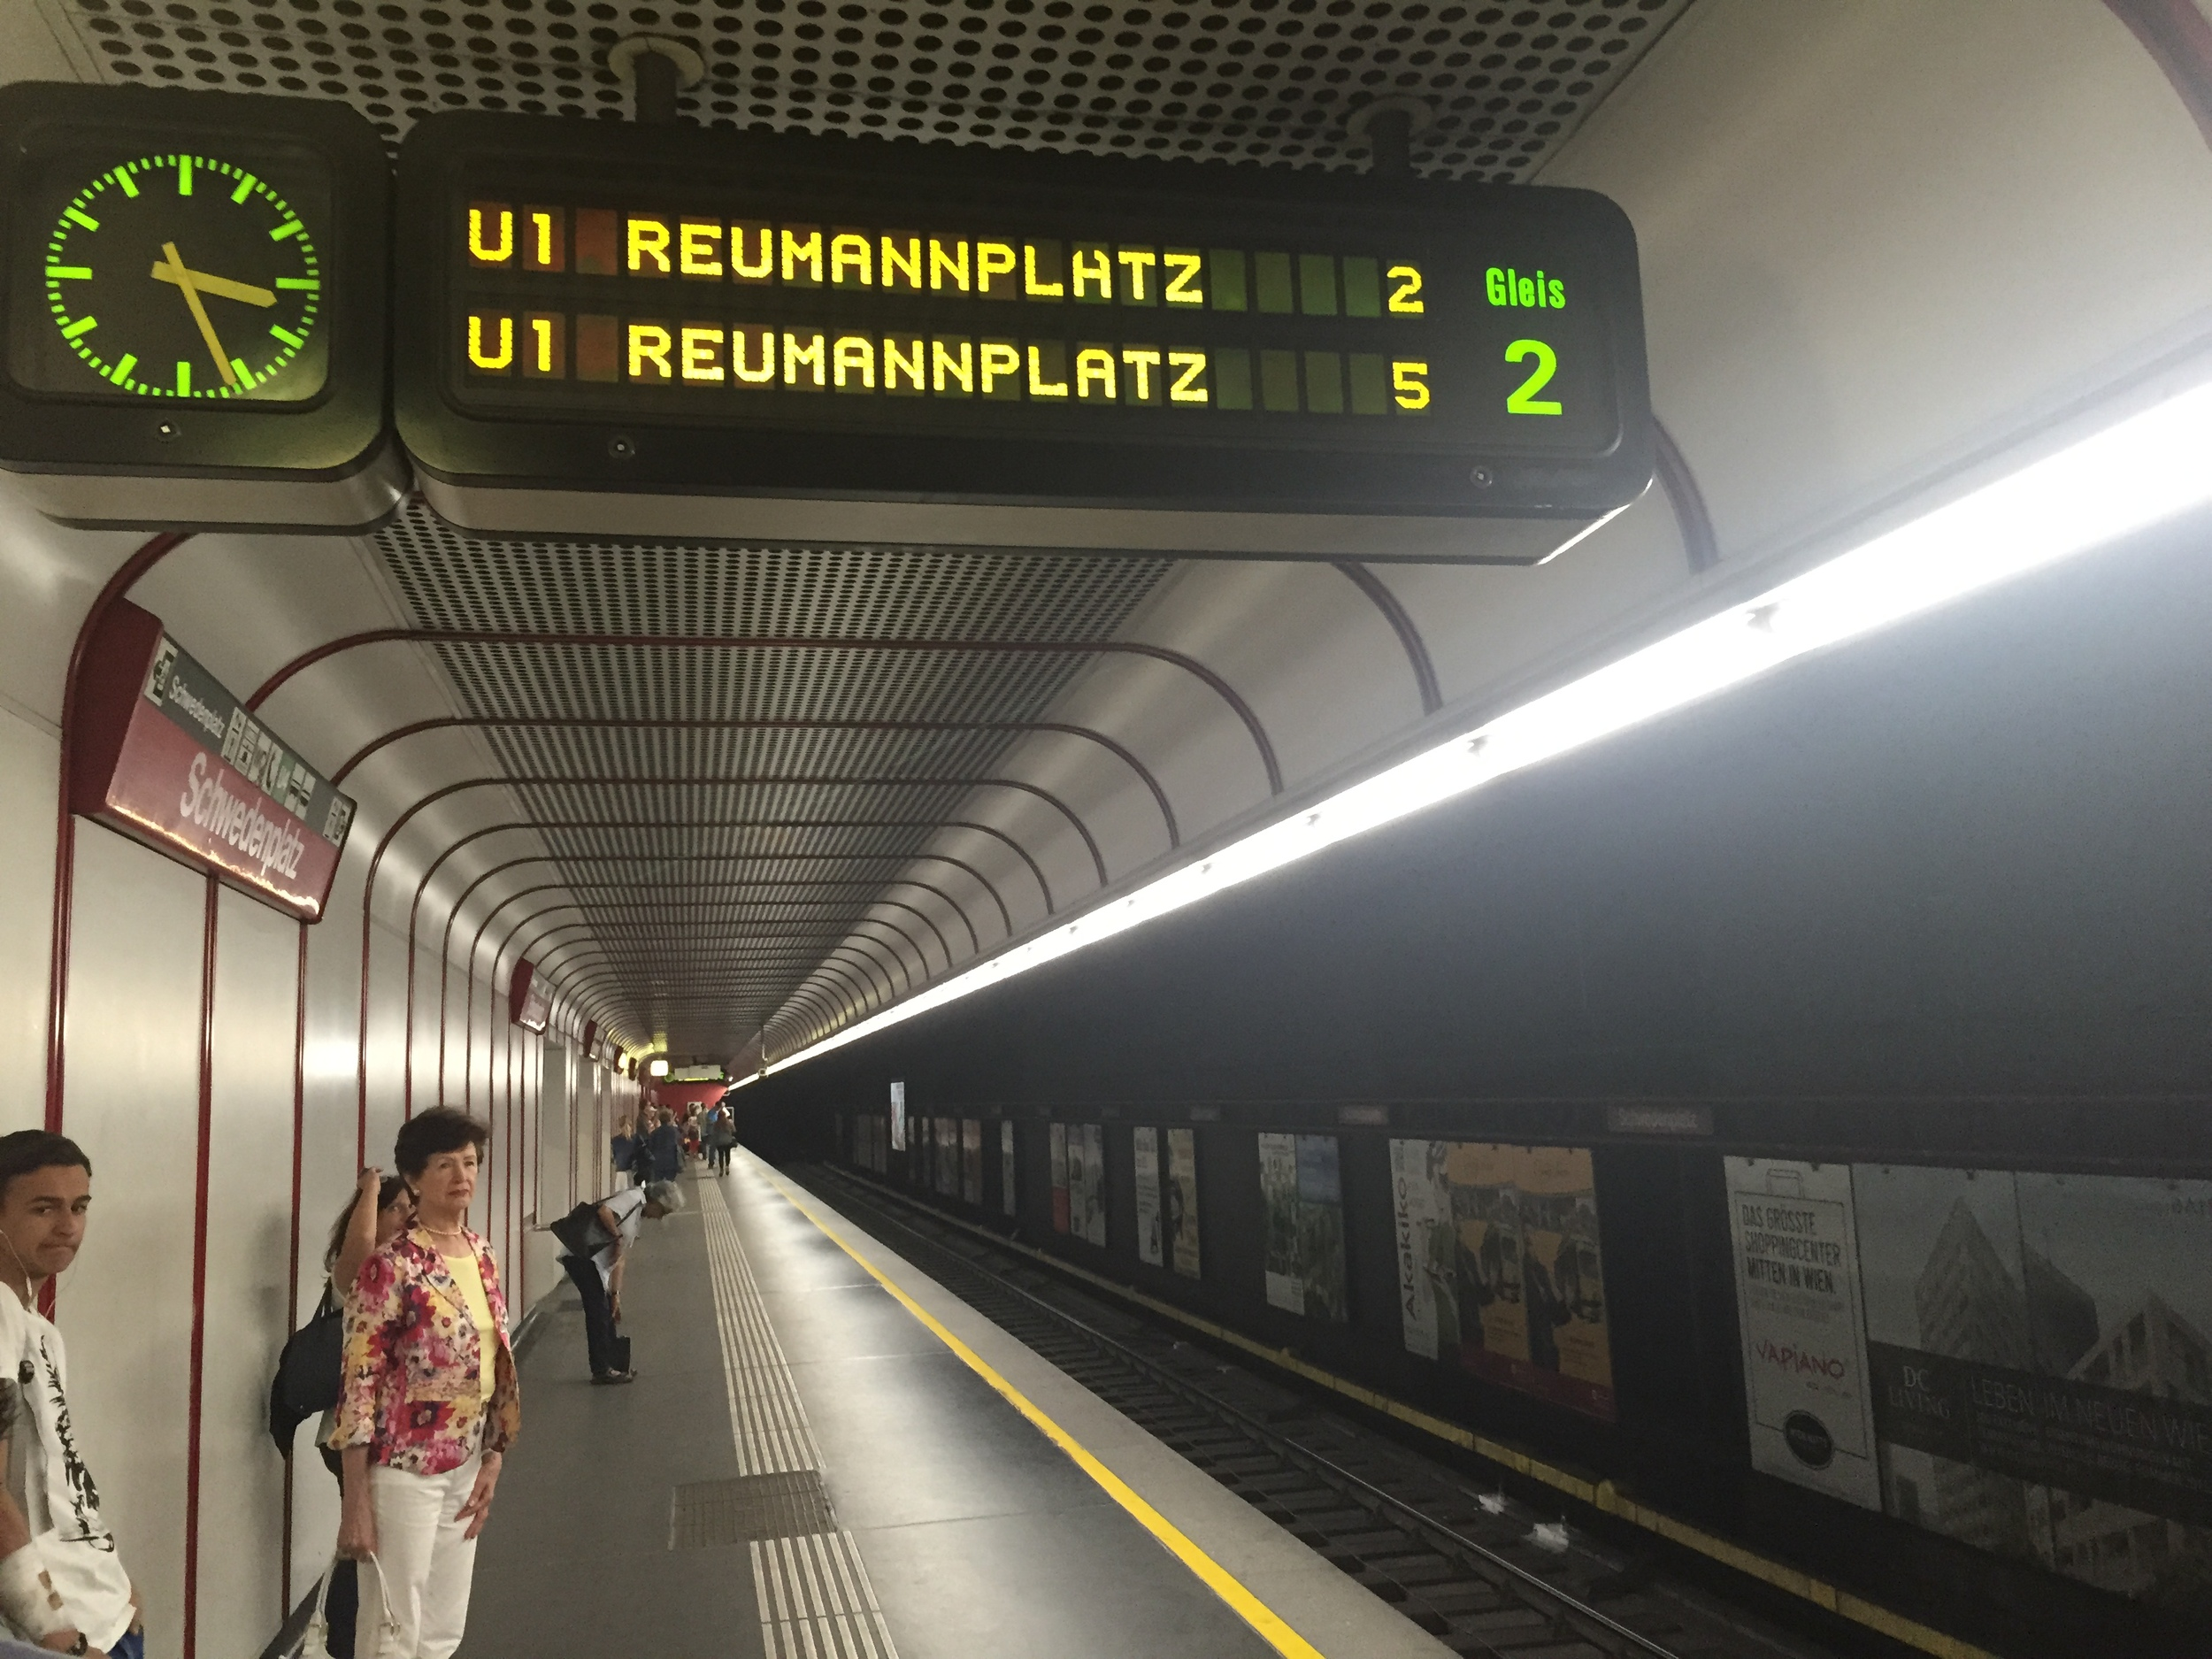 The estimated arrival time is the single digit number to the far right of the train destination (Reumannplatz)